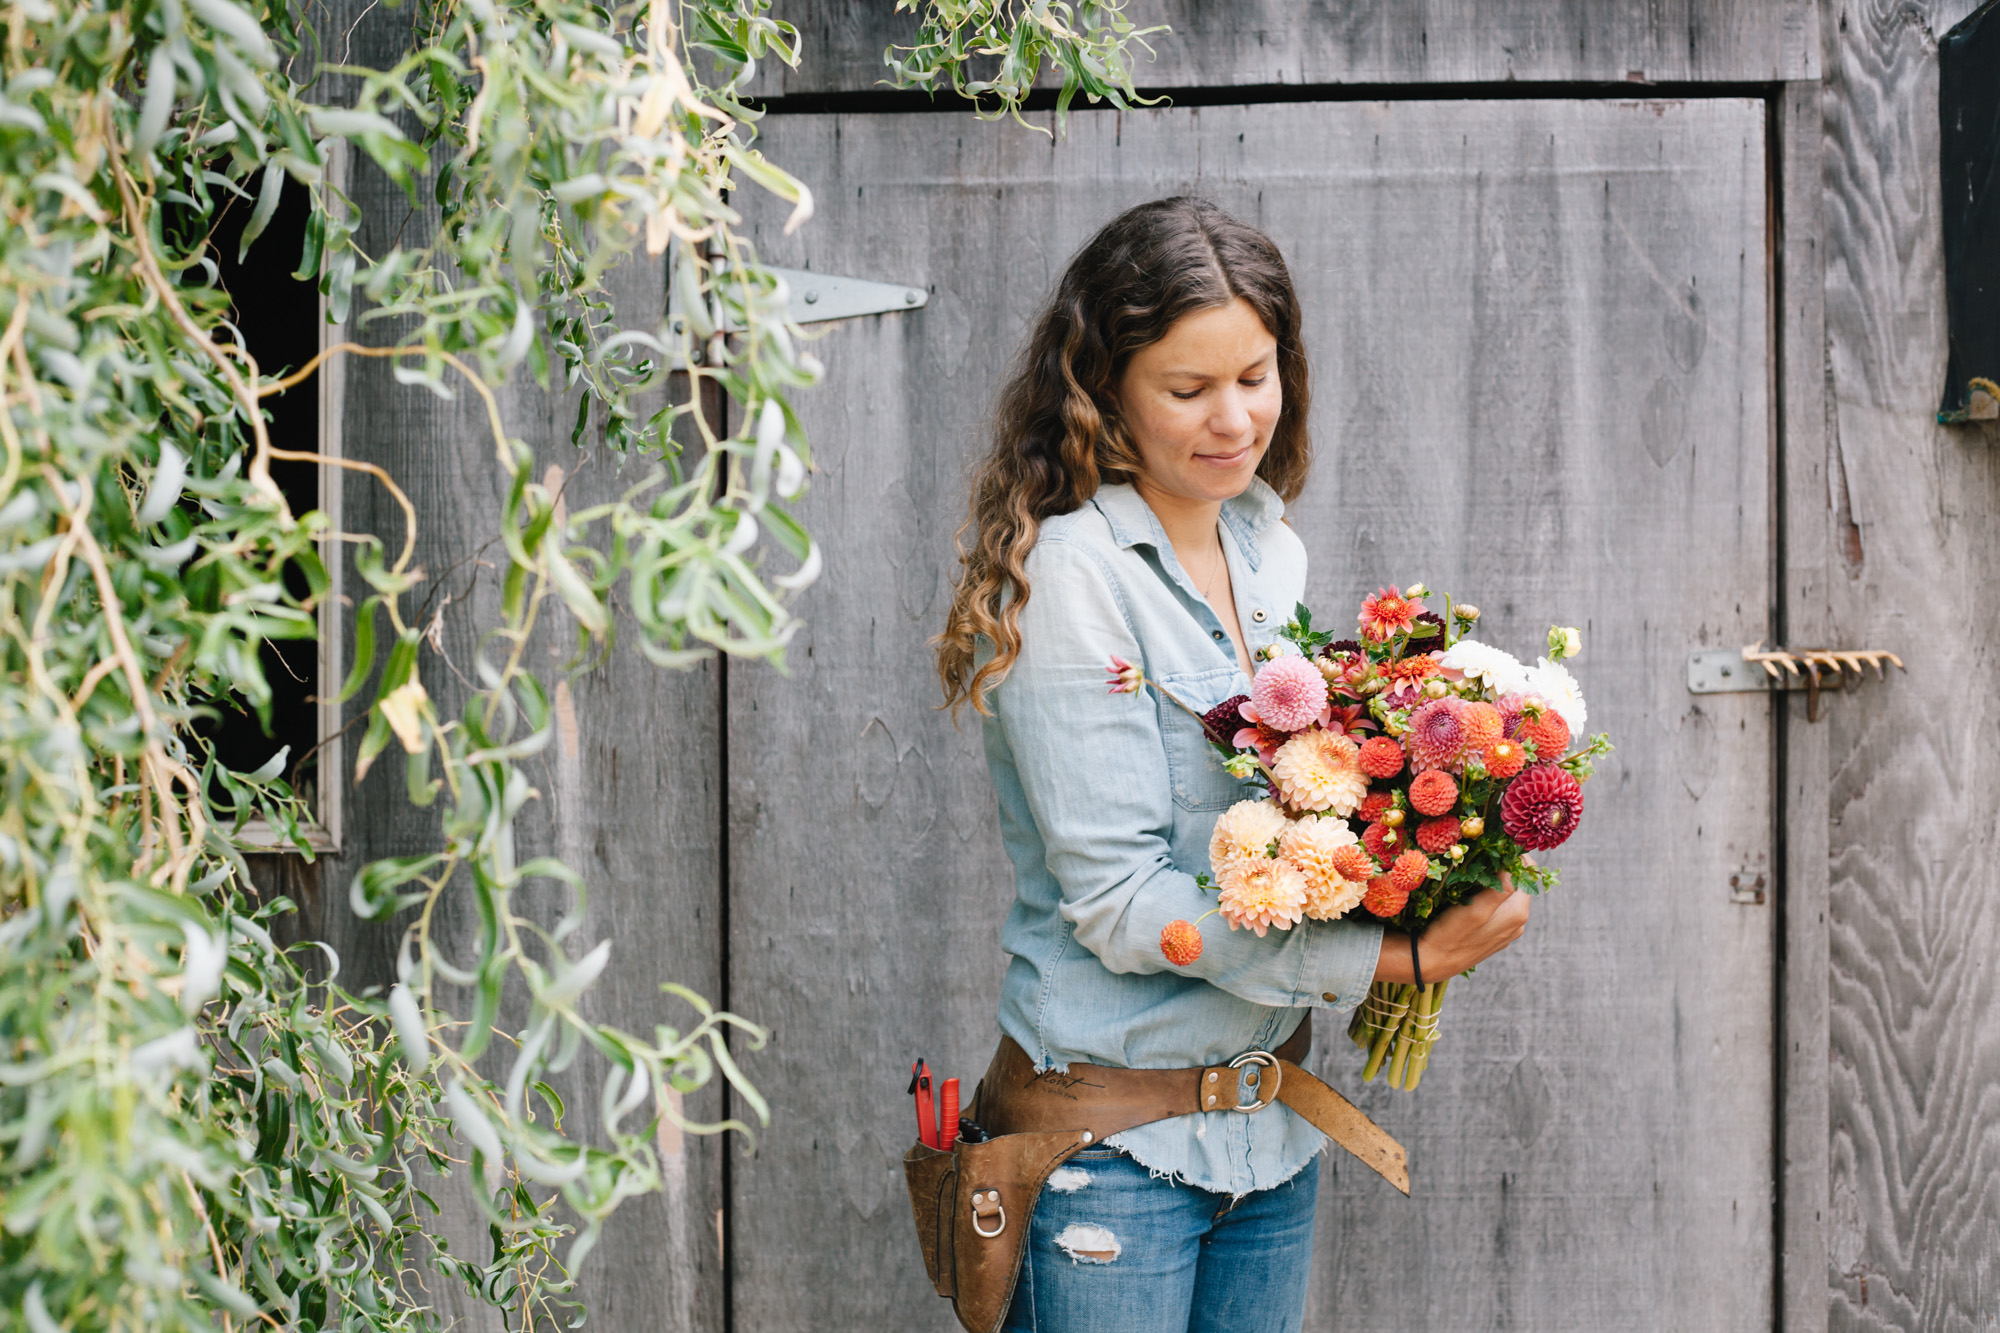 Lucy Whitridge of Petal and Seed Flowers demonstrates an early season harvest of dahlias.